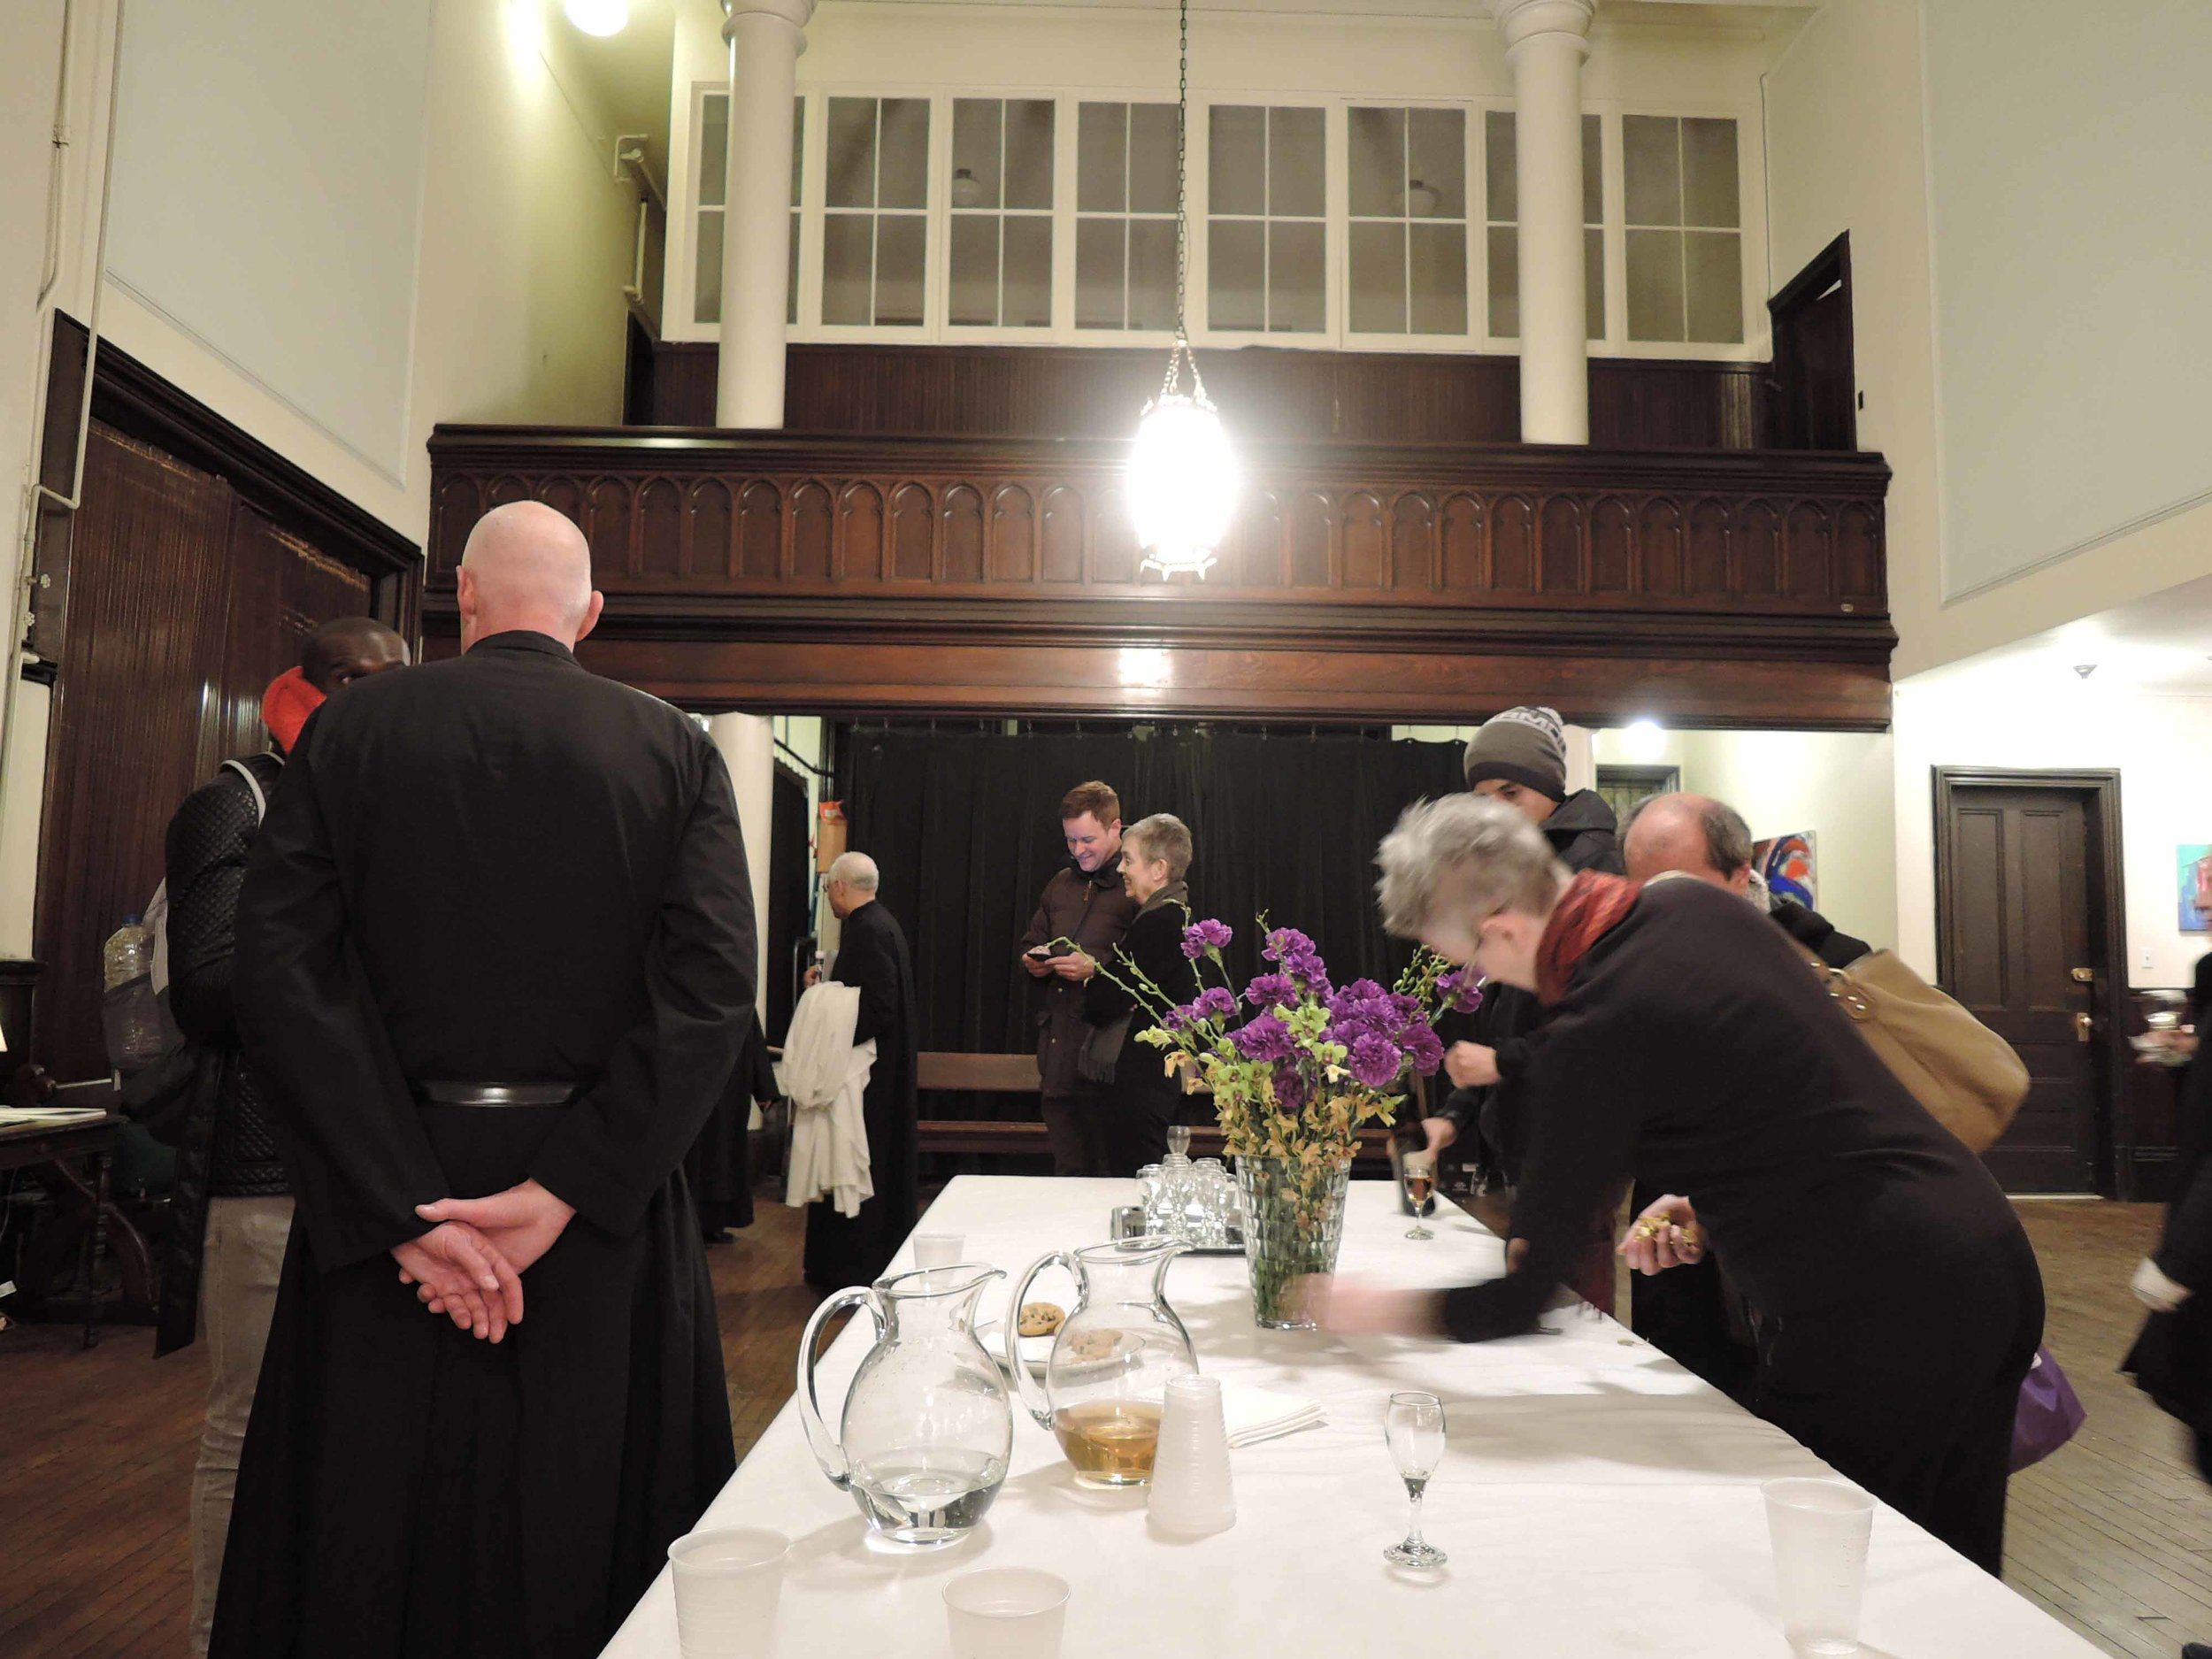 There are always refreshments following Sunday Evensong & Benediction.